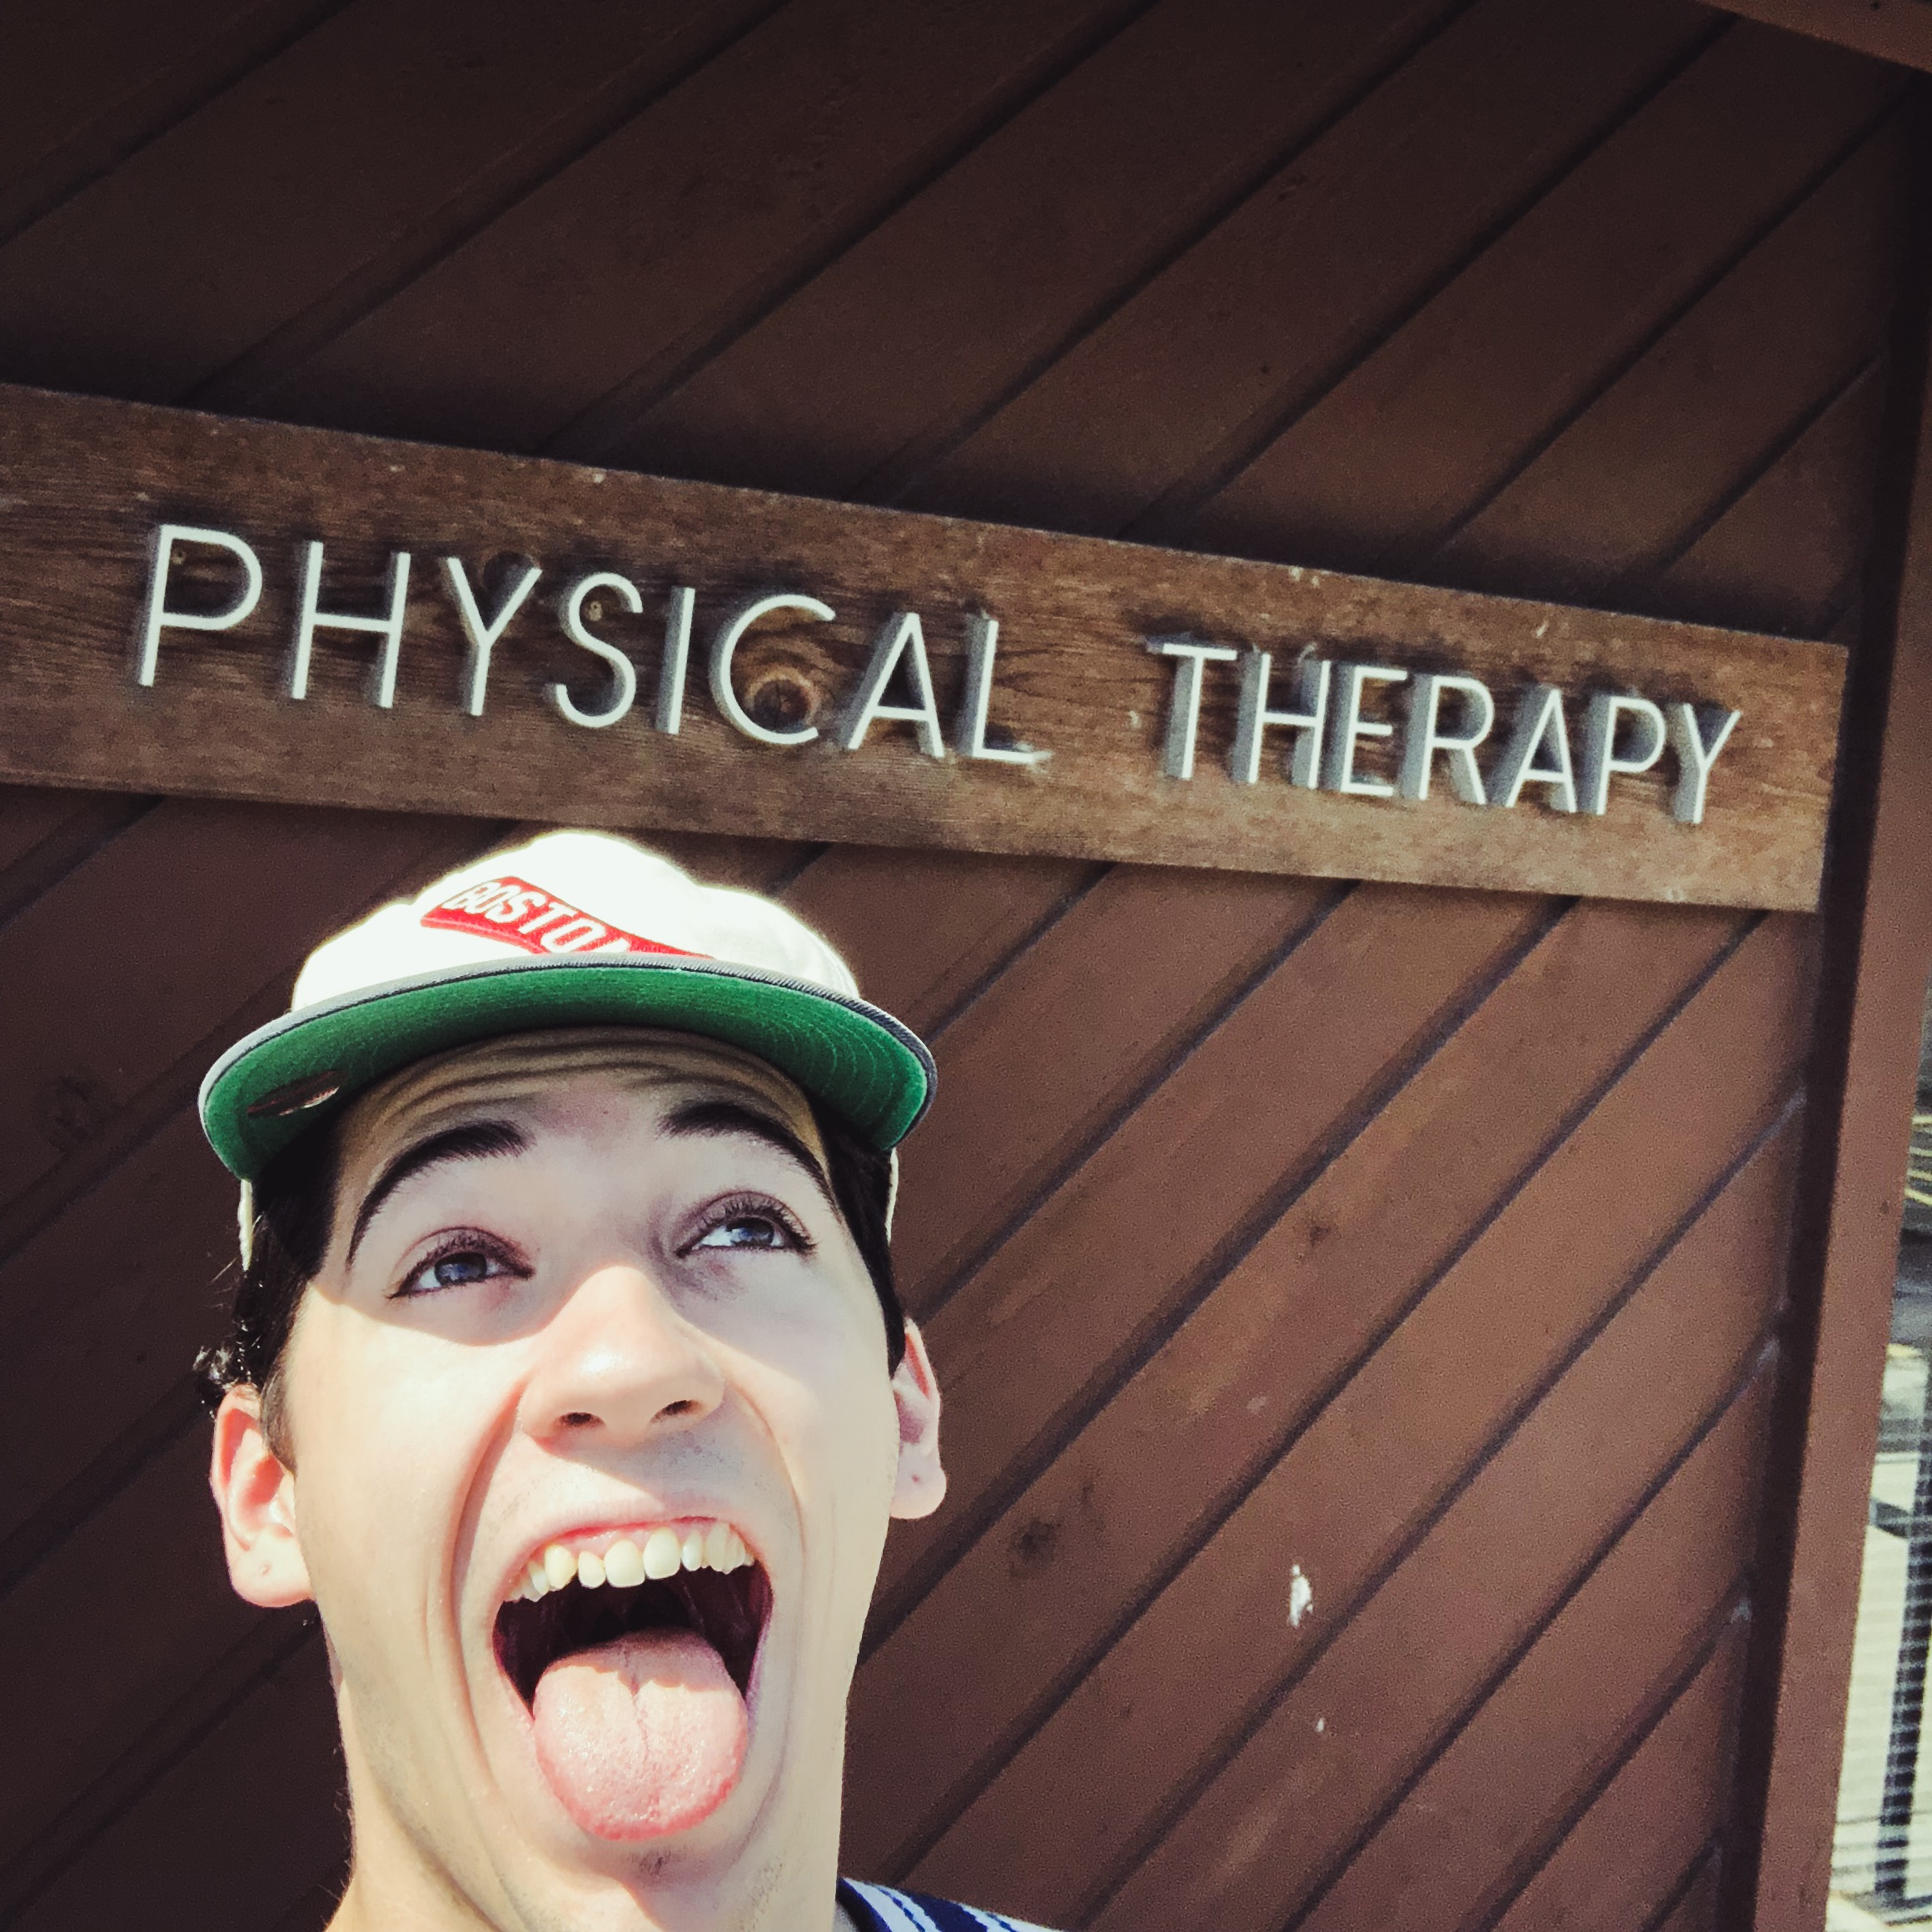 Celebrating the end of physical therapy